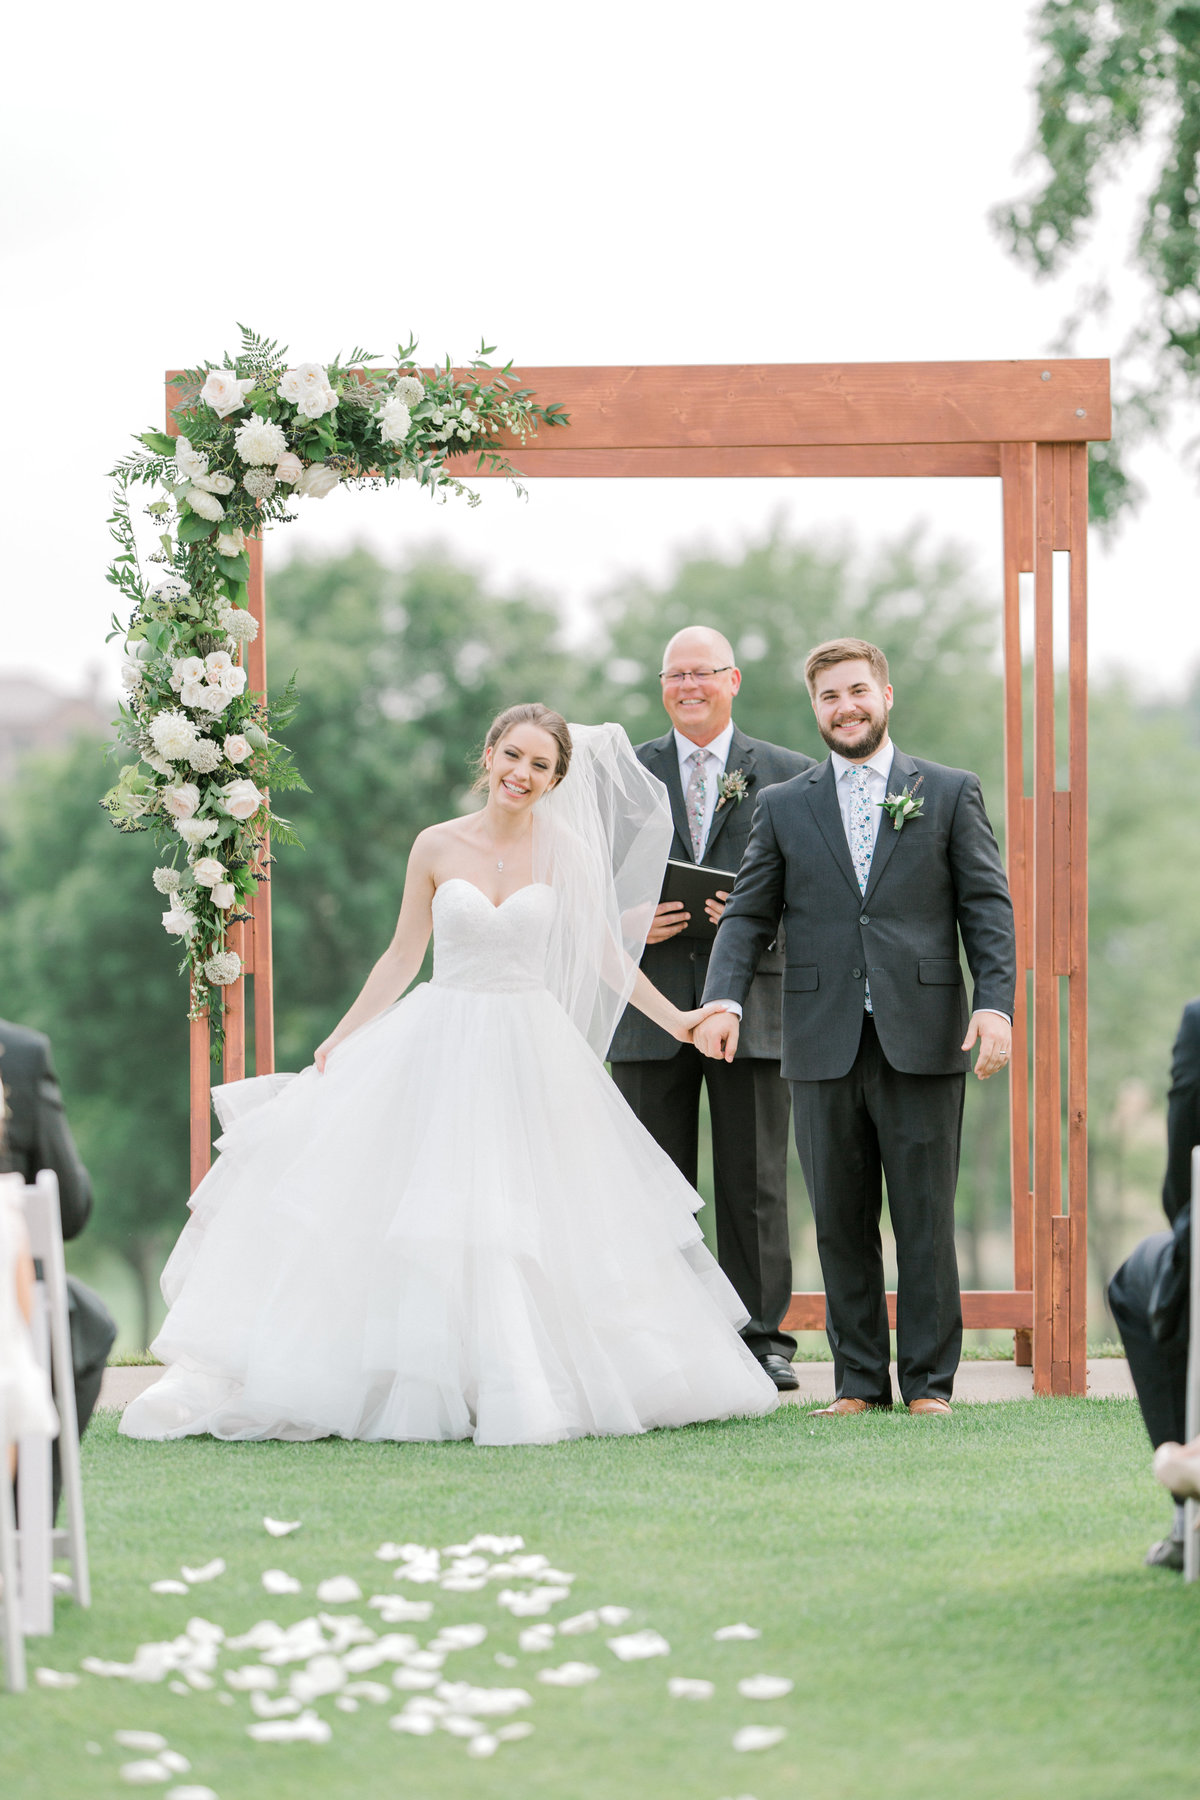 Glen-Oaks-Country-Club-West-Des-Moines-IA-Wedding-J+A-9790